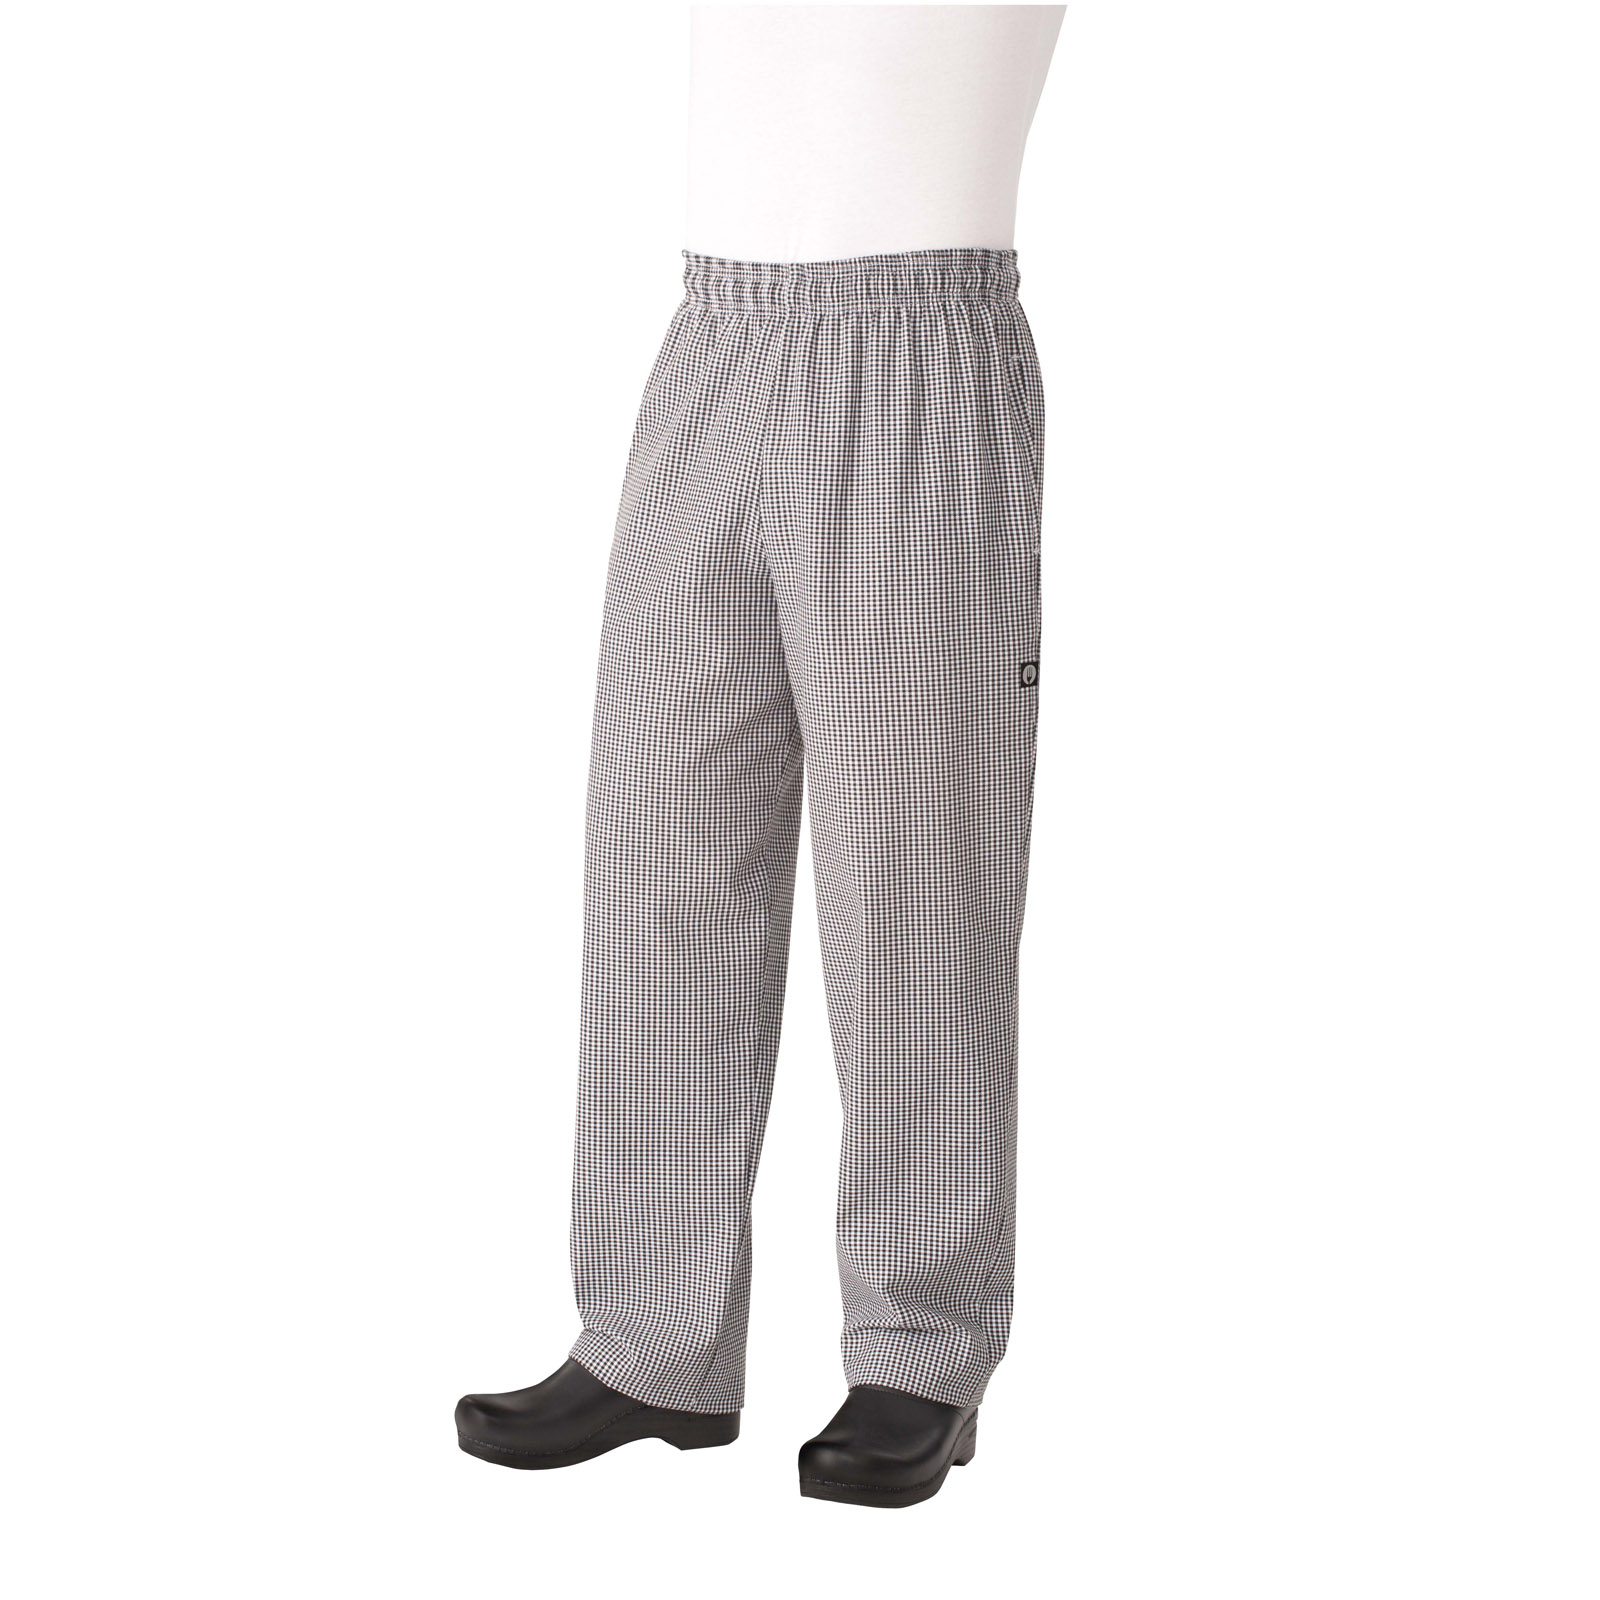 Chef Works NBCP0006XL chef's pants